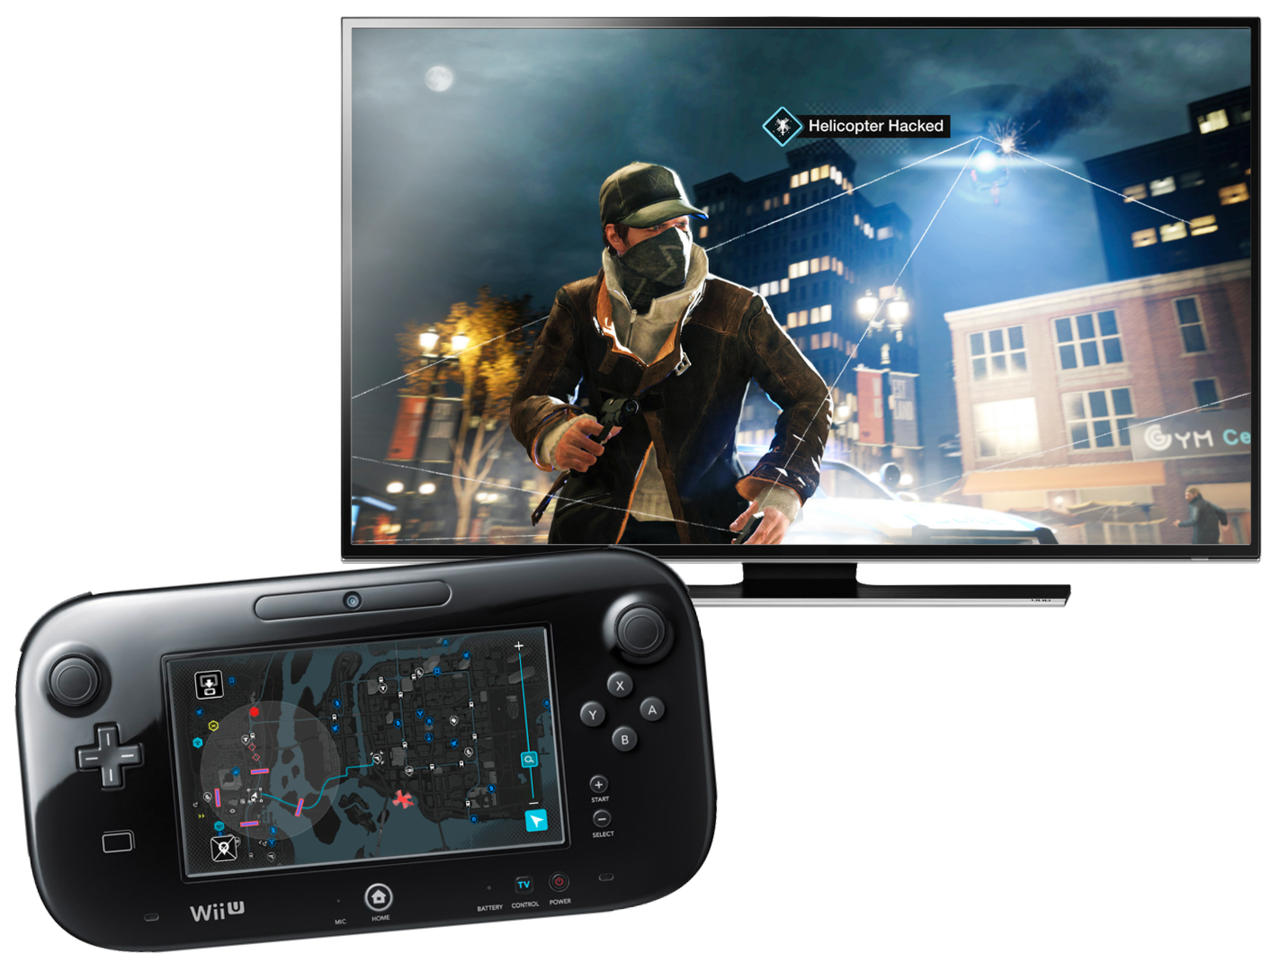 2735216-watch_dogs_helicopter_gamepad_1416328391